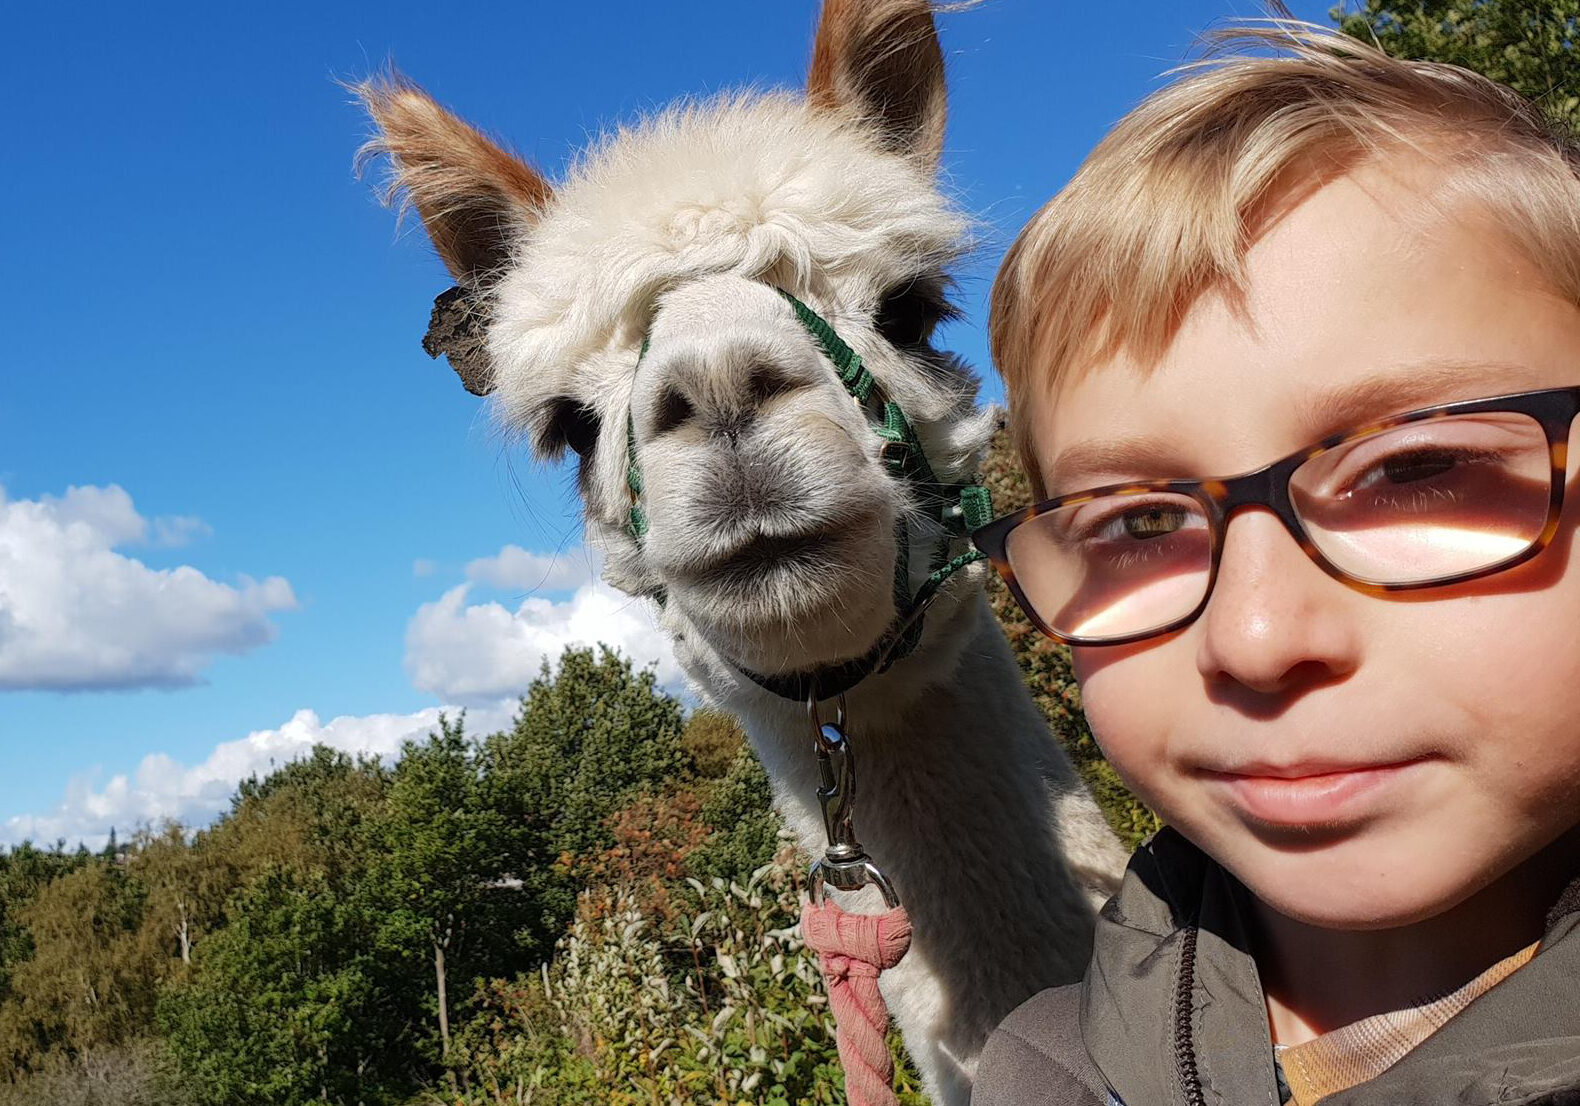 Alpaca trekking with Gordon the alpaca